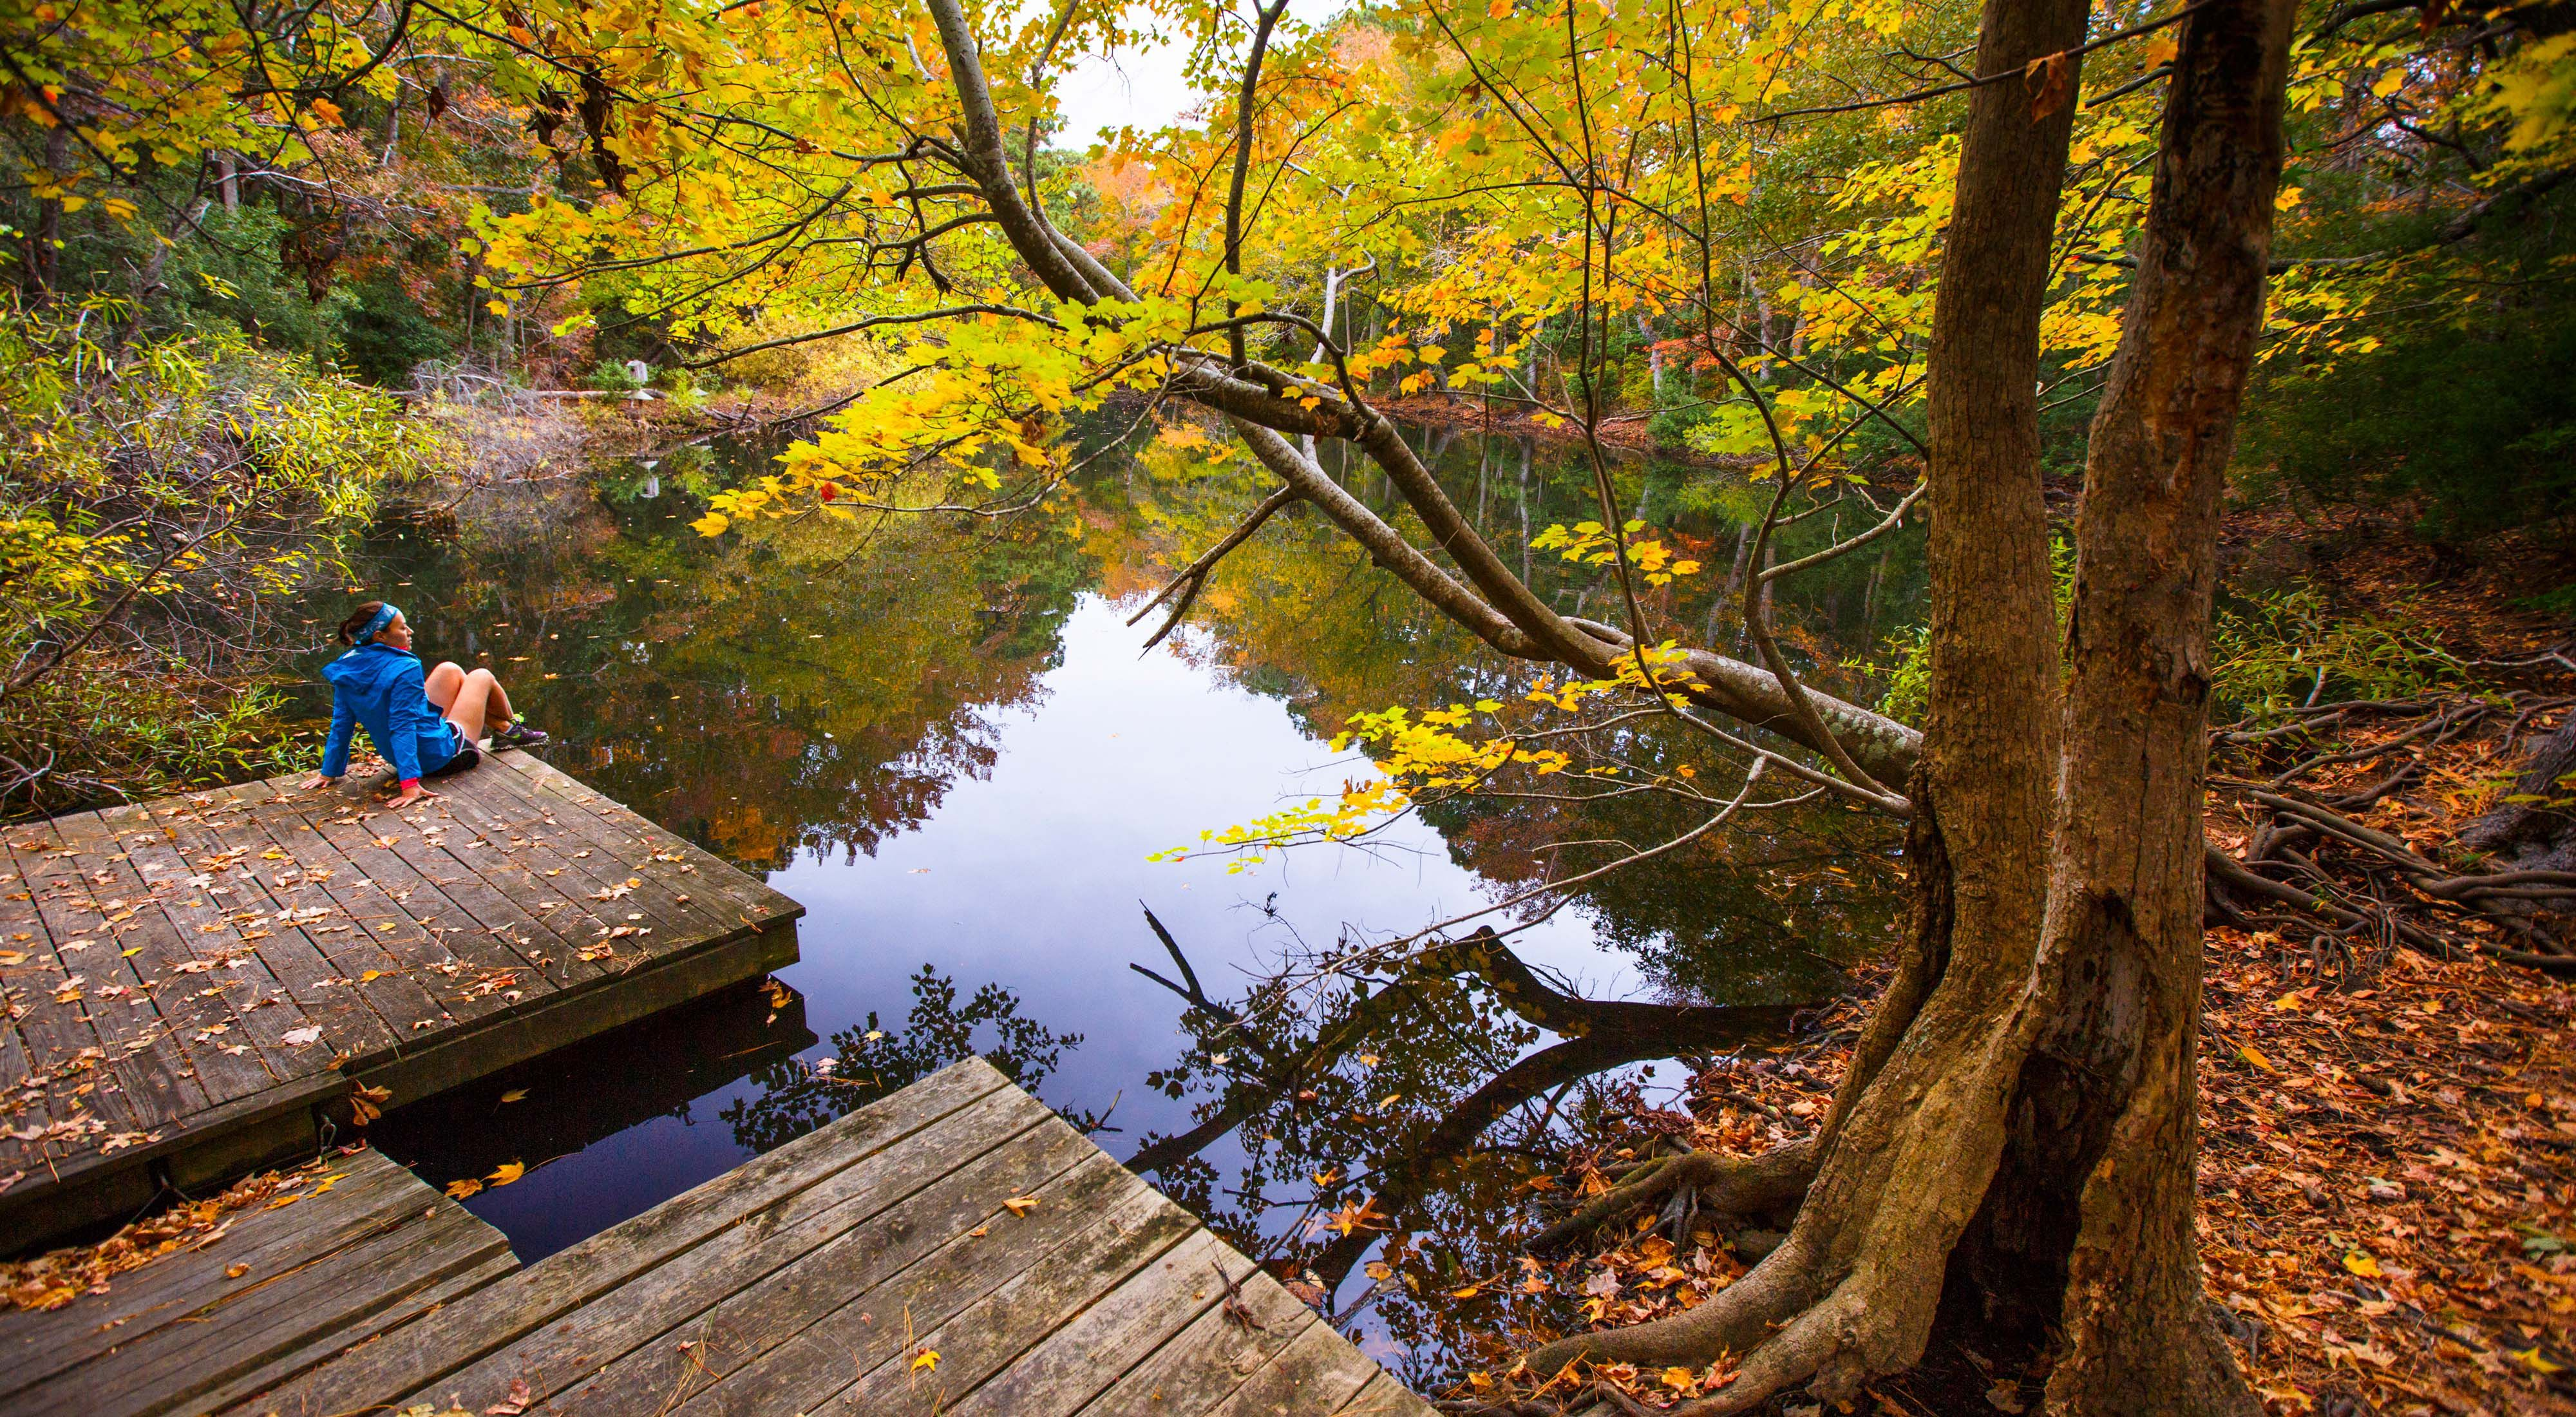 A young woman sits on a pier overlooking a pond, surrounded by trees with fall foliage.